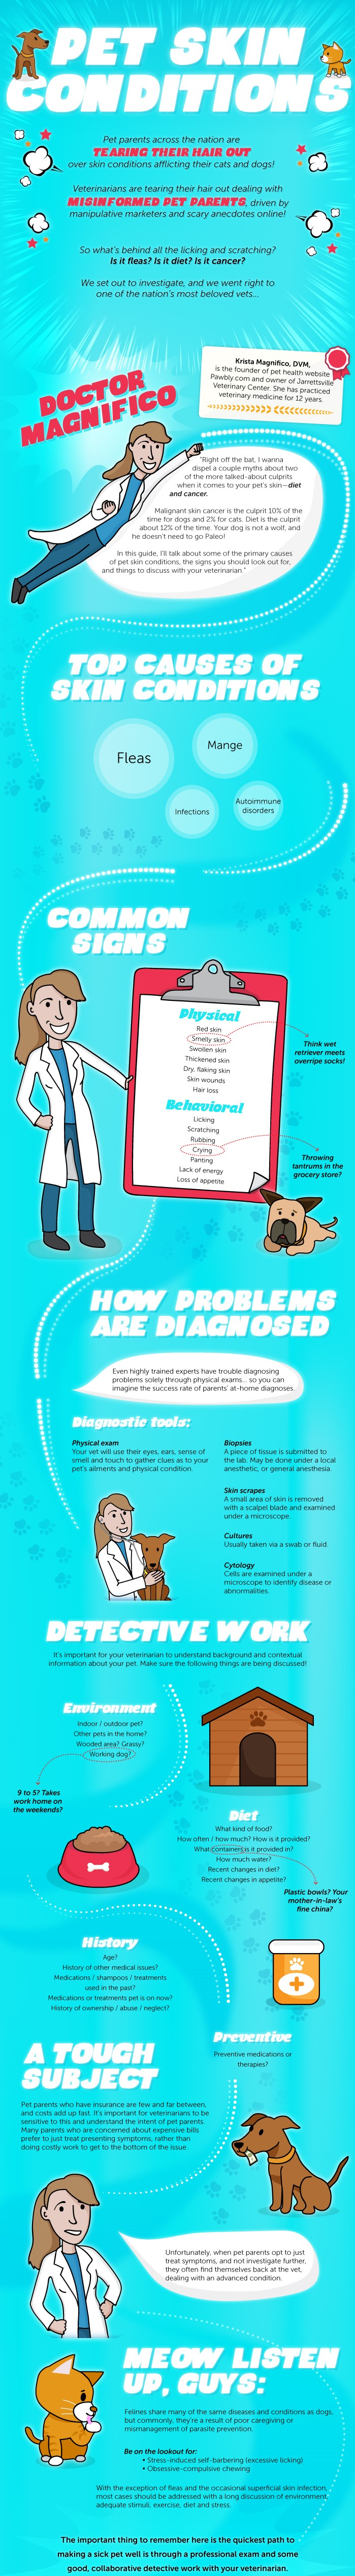 Common Skin Conditions in Pets Infographic